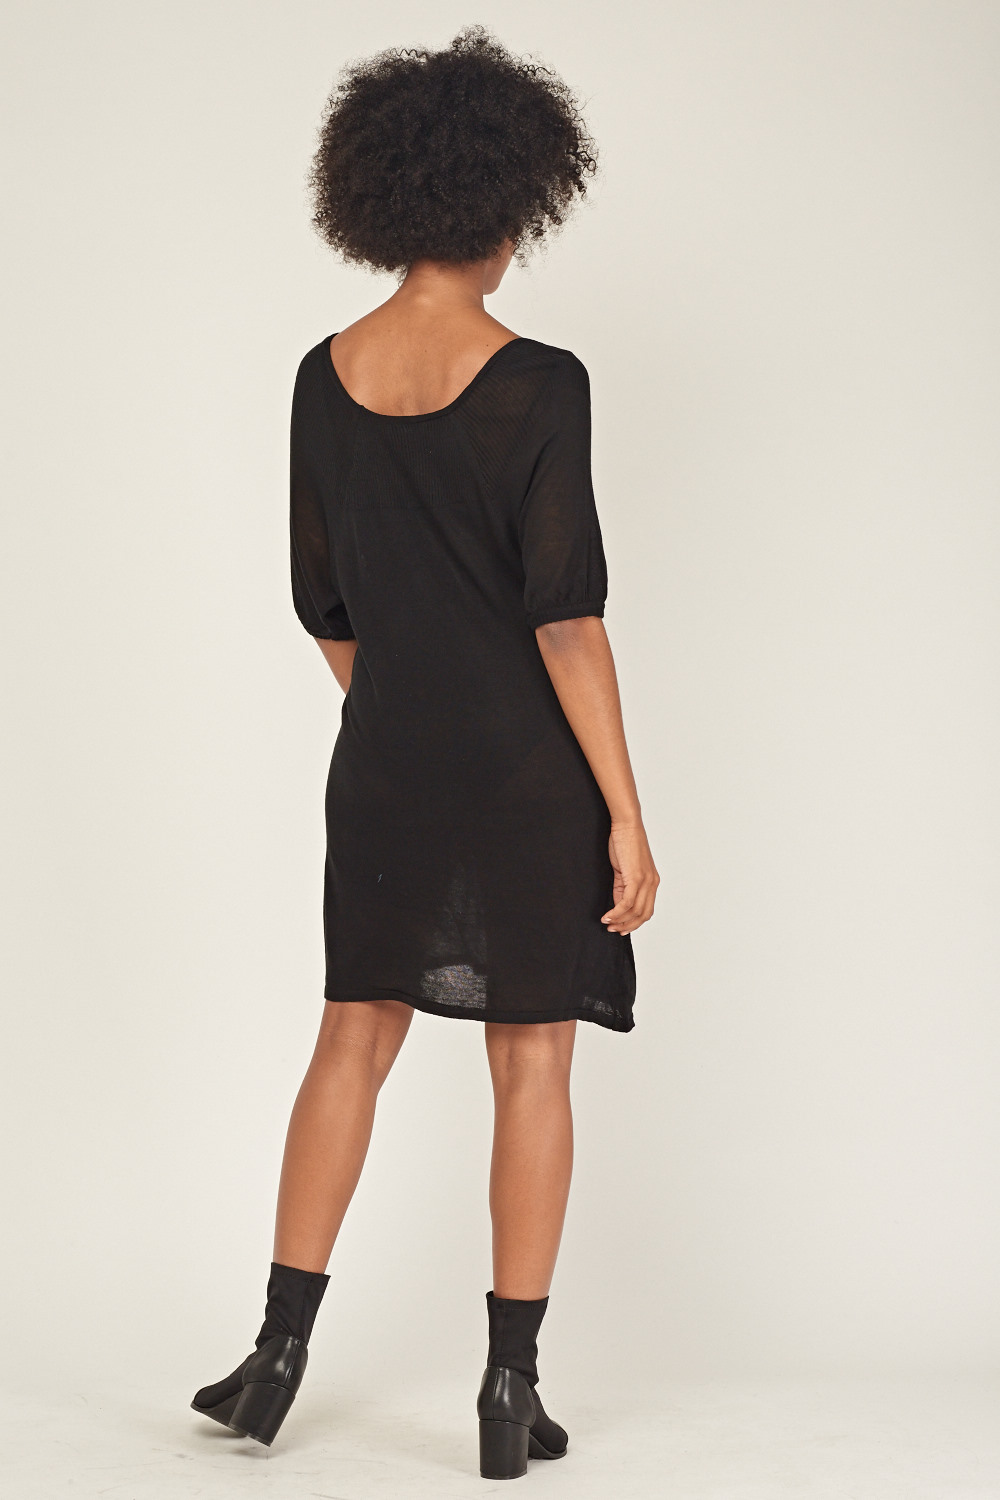 Batwing Knitted Casual Dress 4 Colours Just 163 5